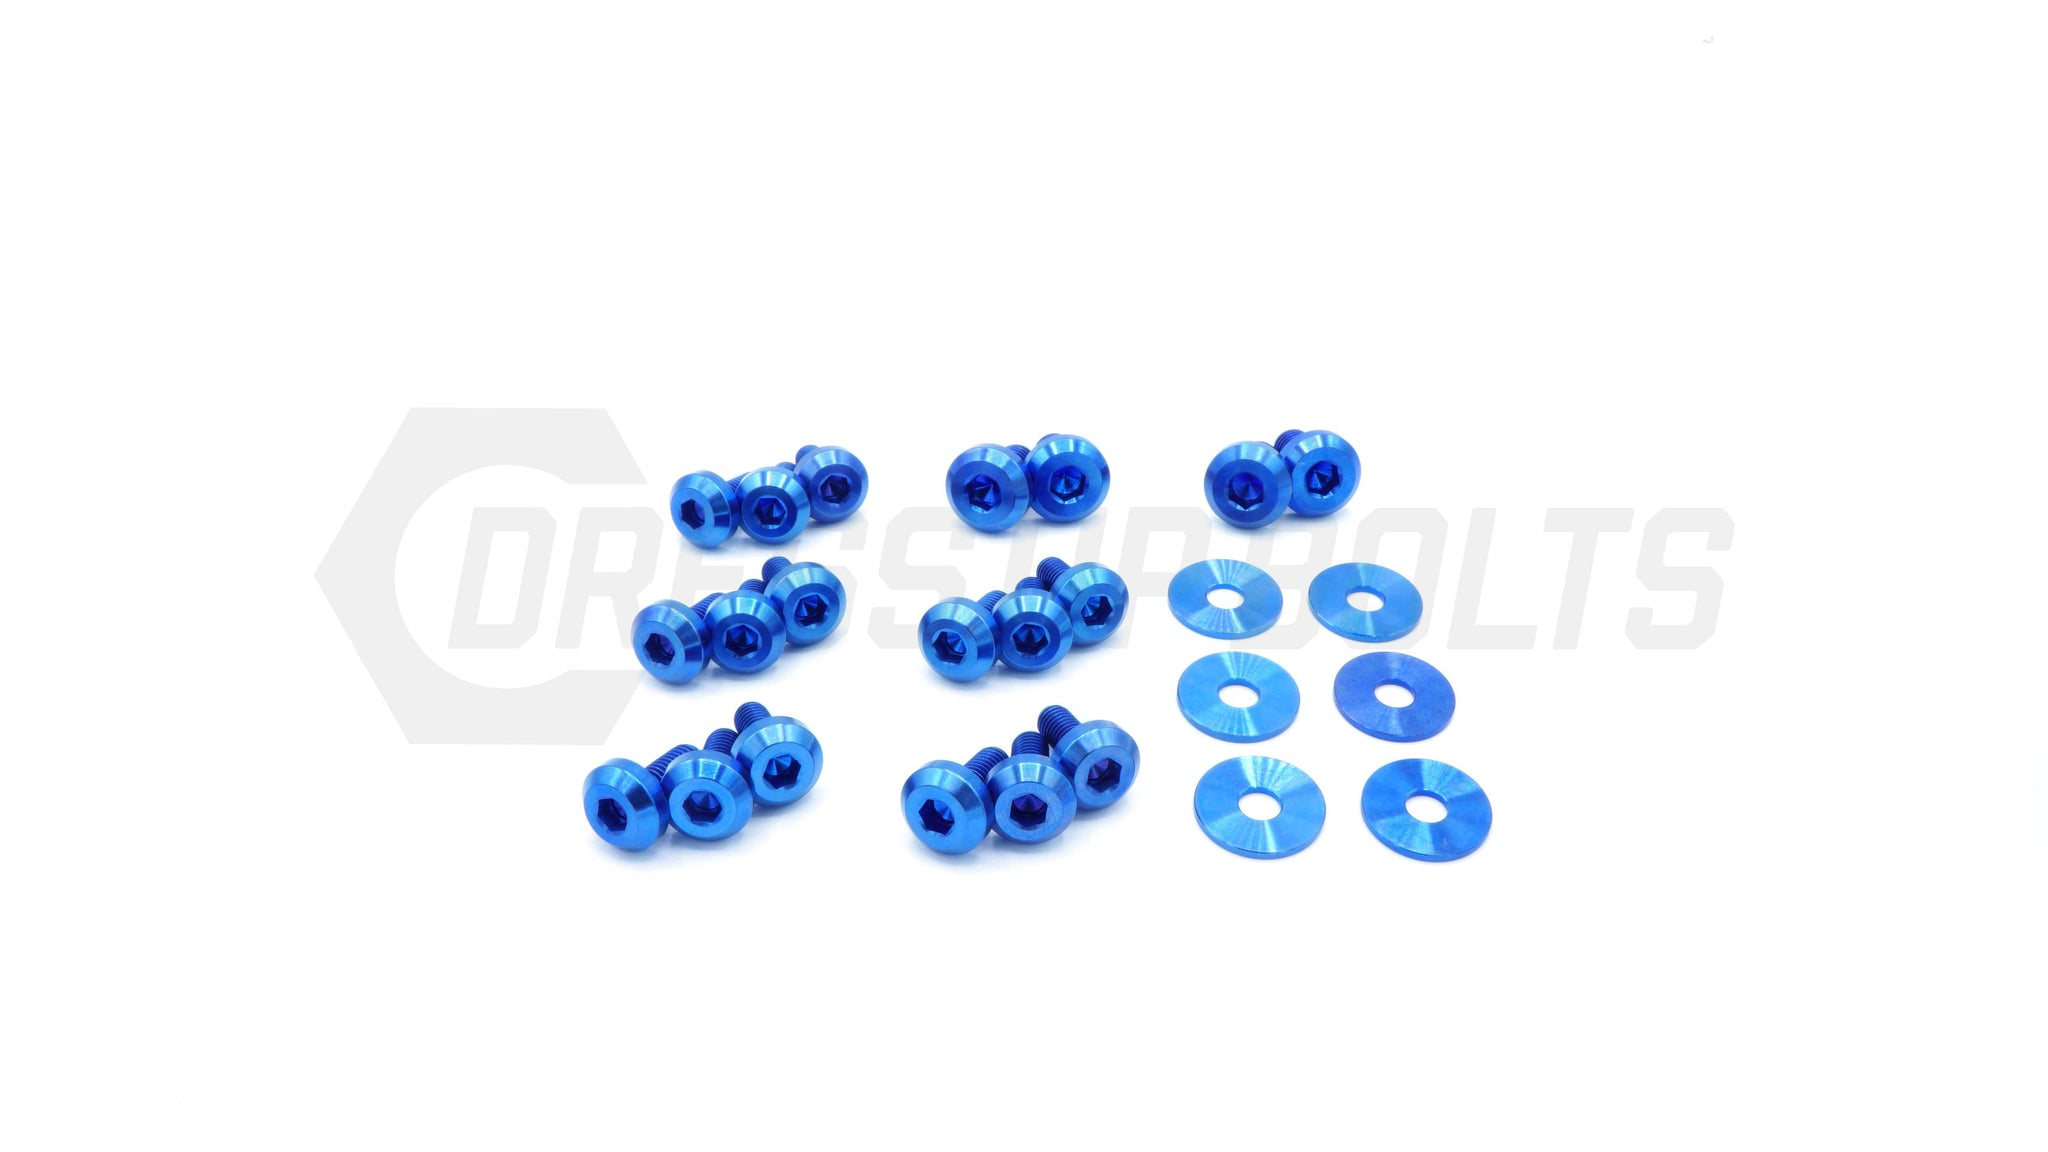 Nissan Silvia S13 (1989-1995) Titanium Dress Up Bolts Partial Engine Bay Kit - DressUpBolts.com